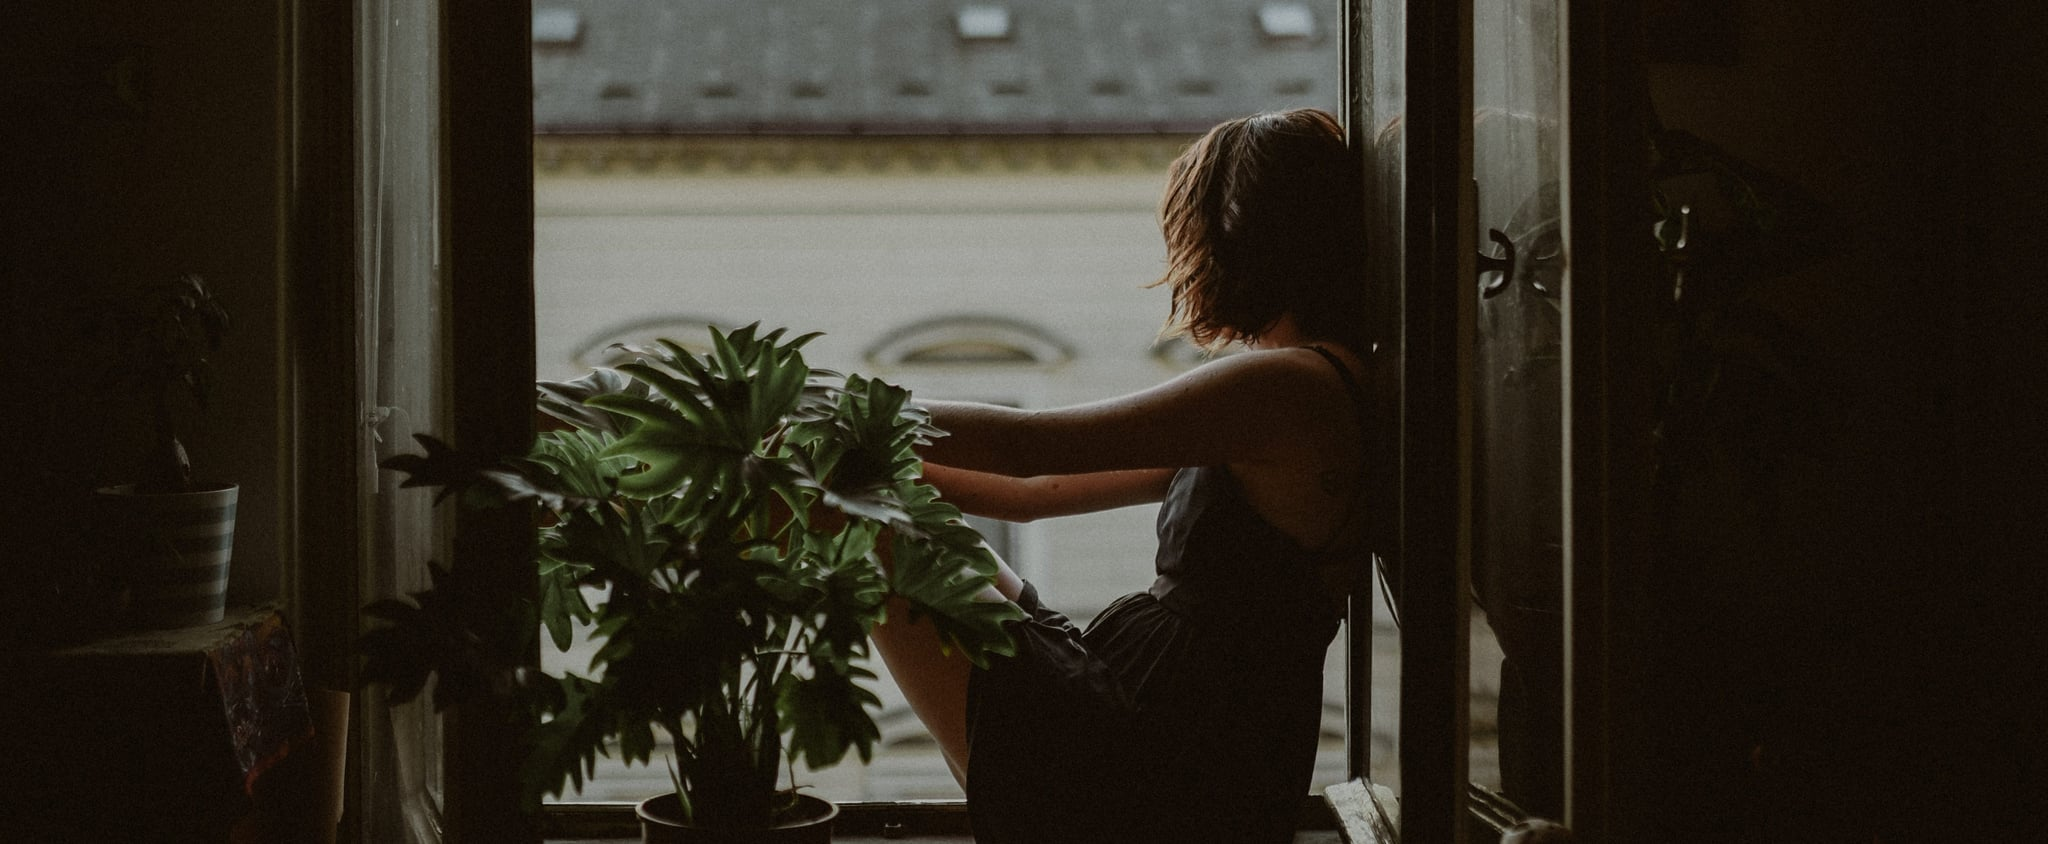 Lessons Learned From a Breakup